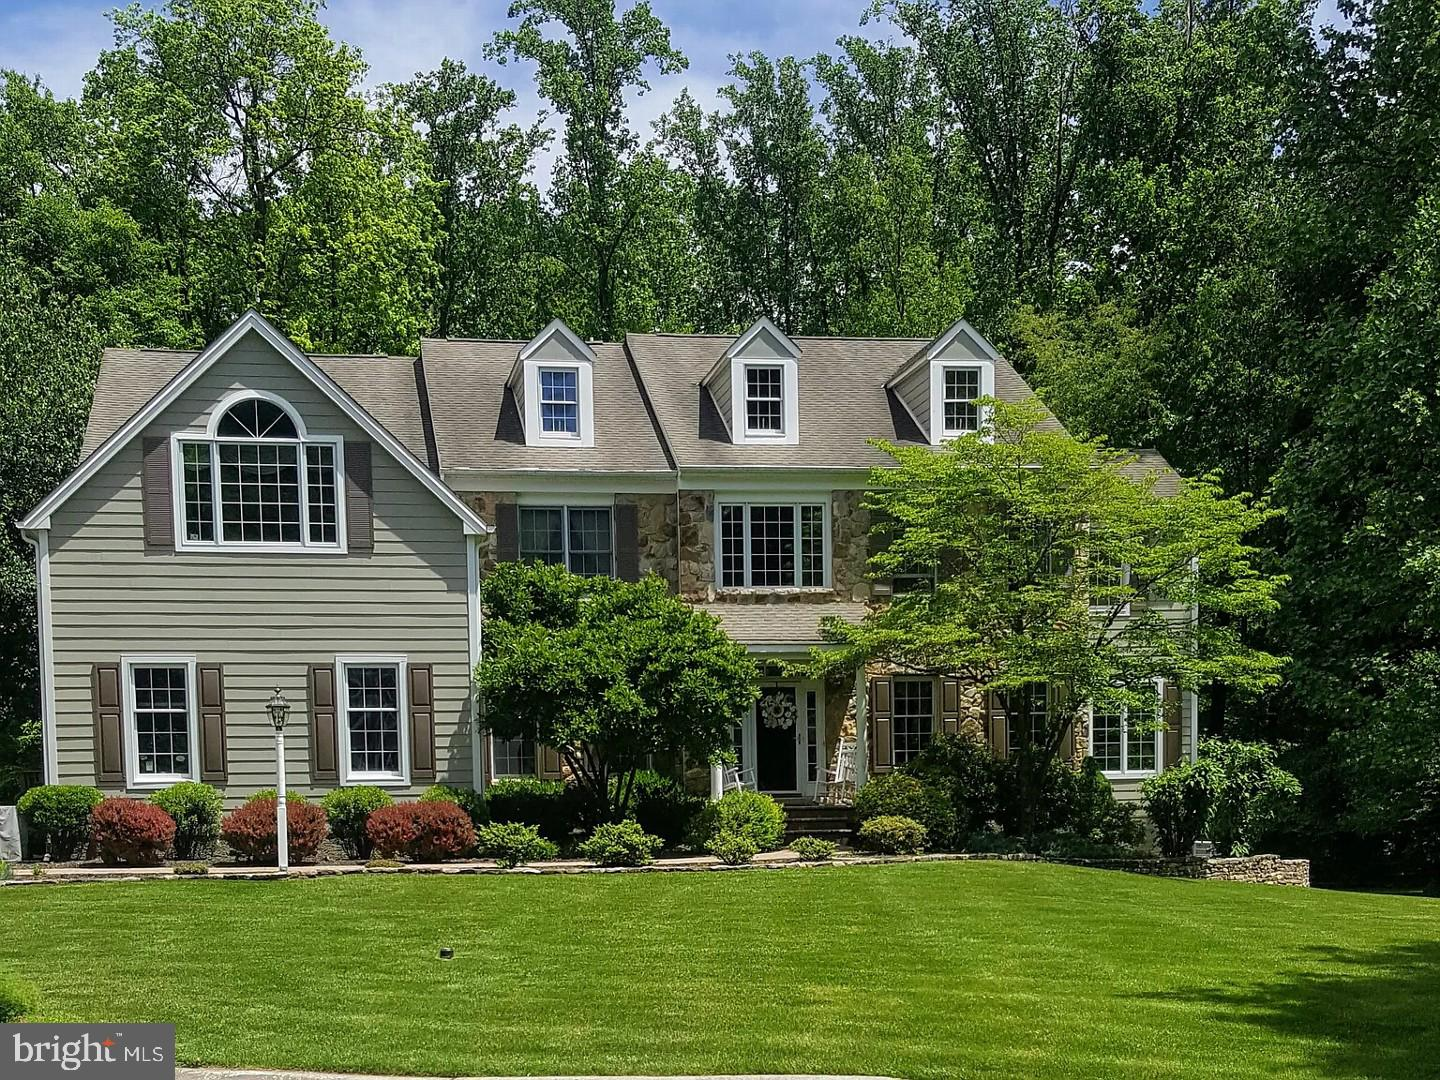 1107 DICKENS DRIVE, WEST CHESTER, PA 19380